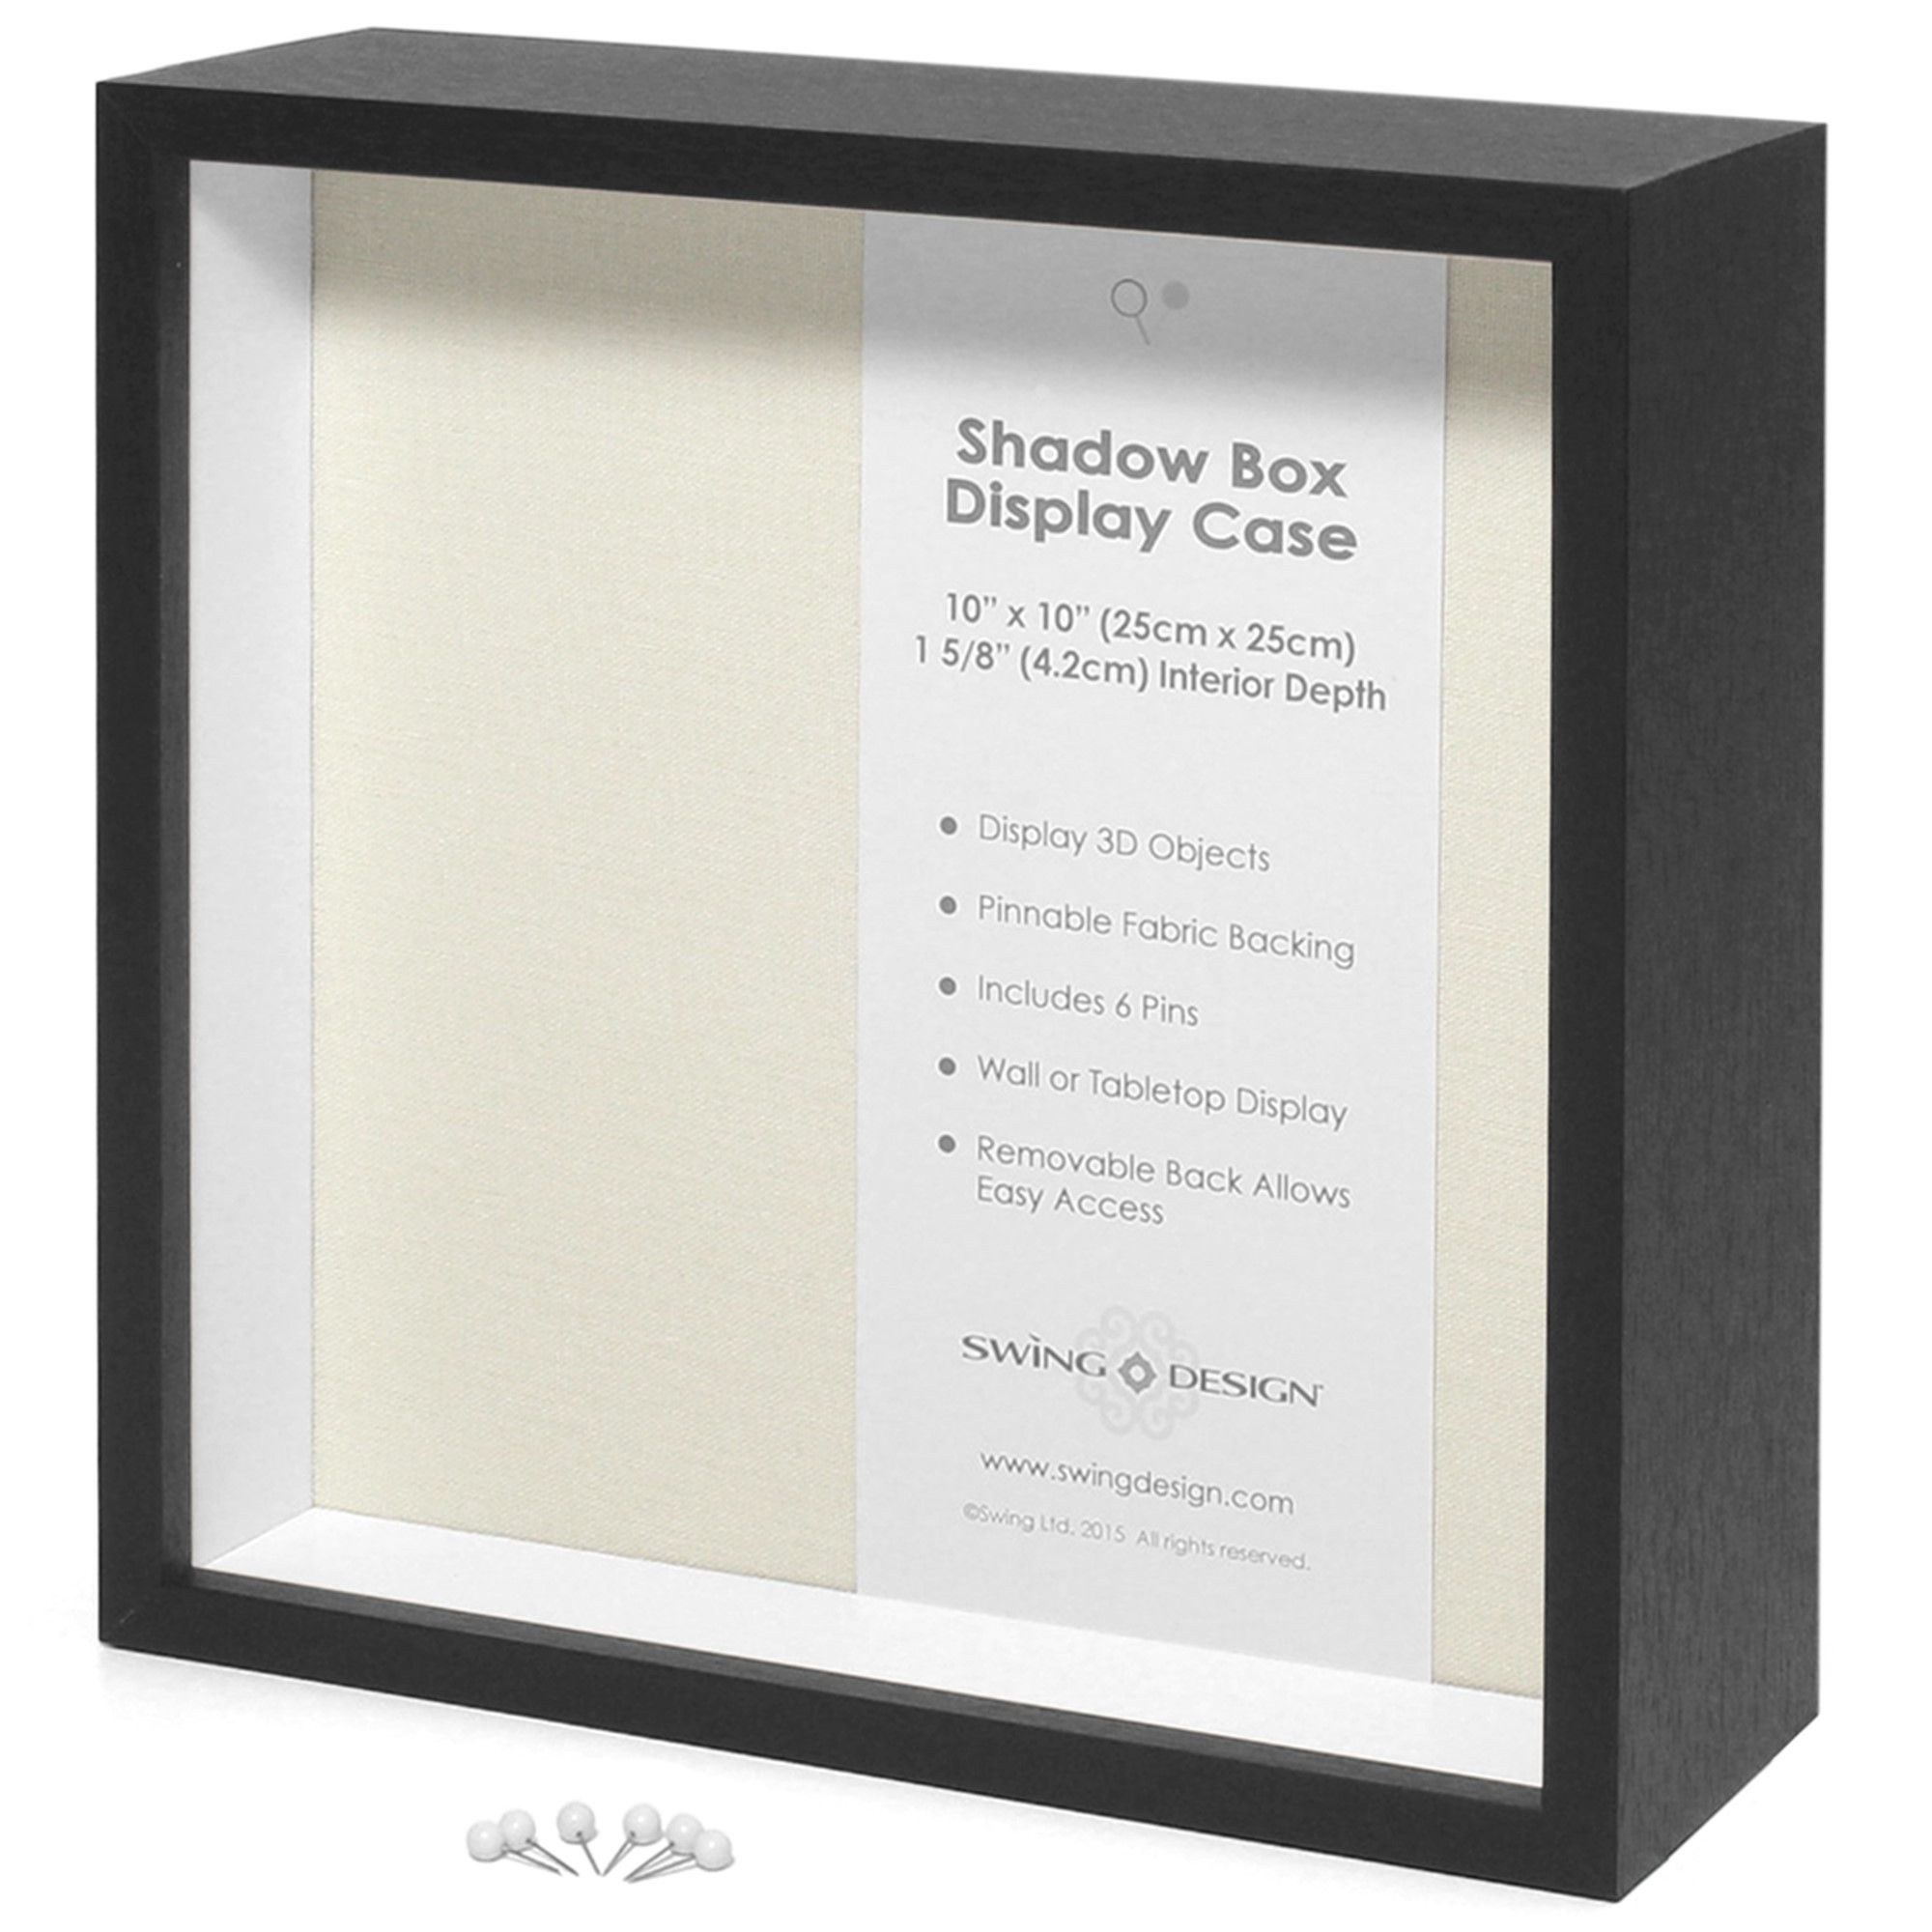 Display Shadow Box Black 10x10 Shadow Box Swing Design Shadow Box Display Case